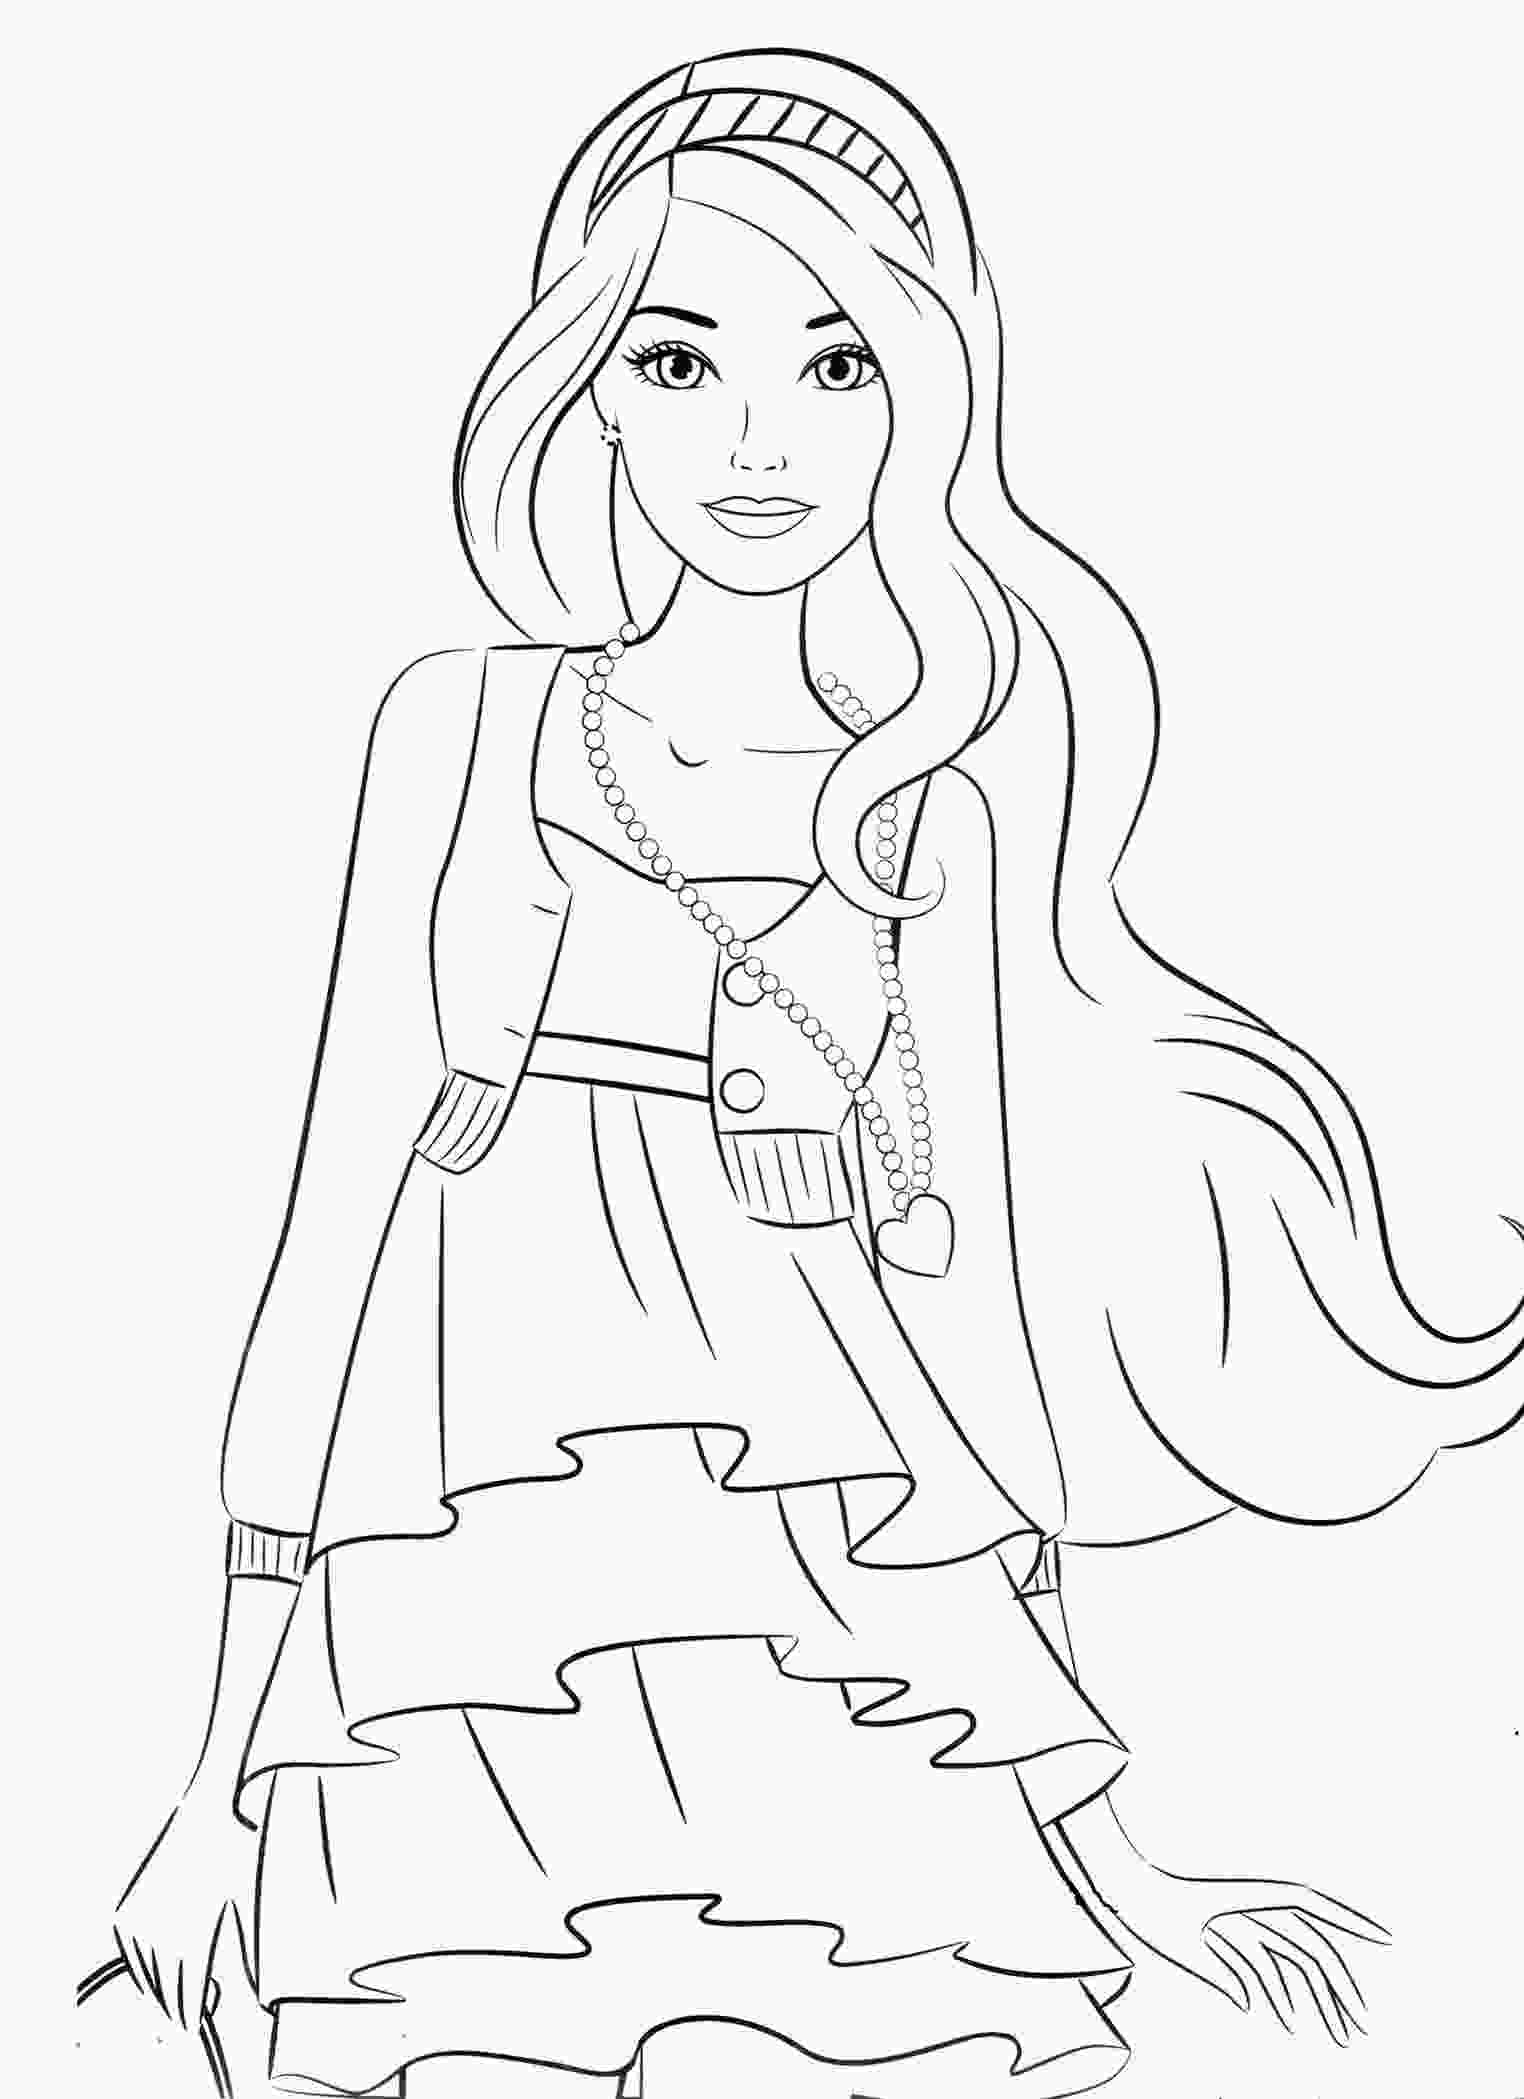 coloring sheets of girls coloring pages for 8910year old girls to download and